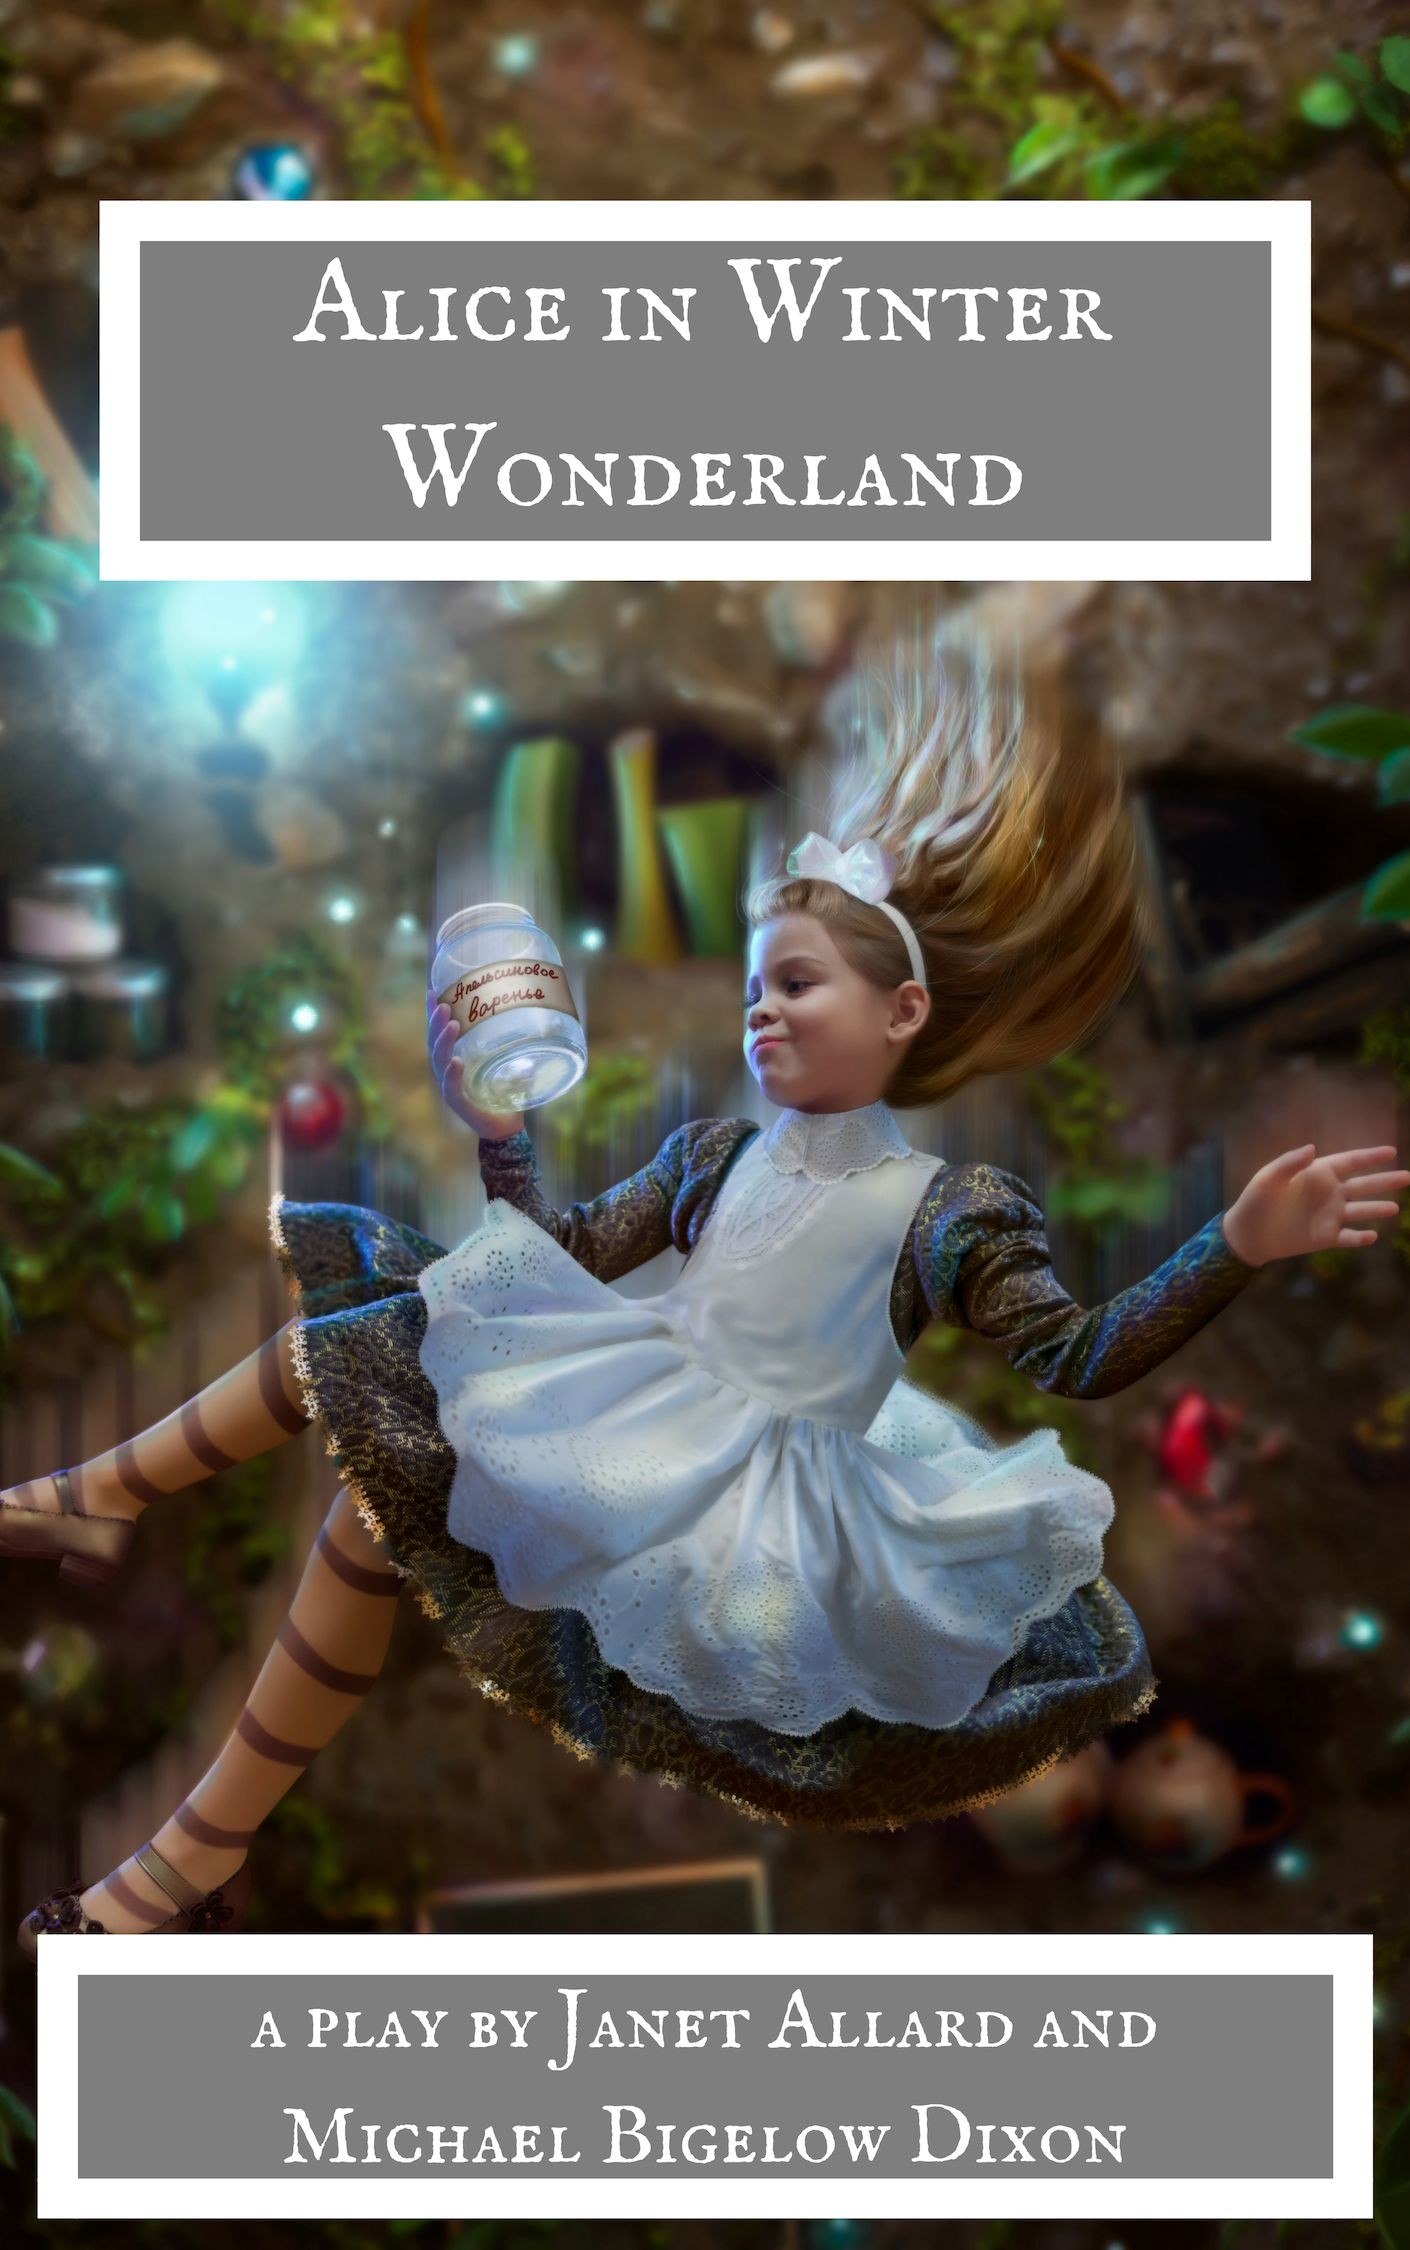 Alice in Winter Wonderland by Janet Allard and MIchael Bigelow Dixon